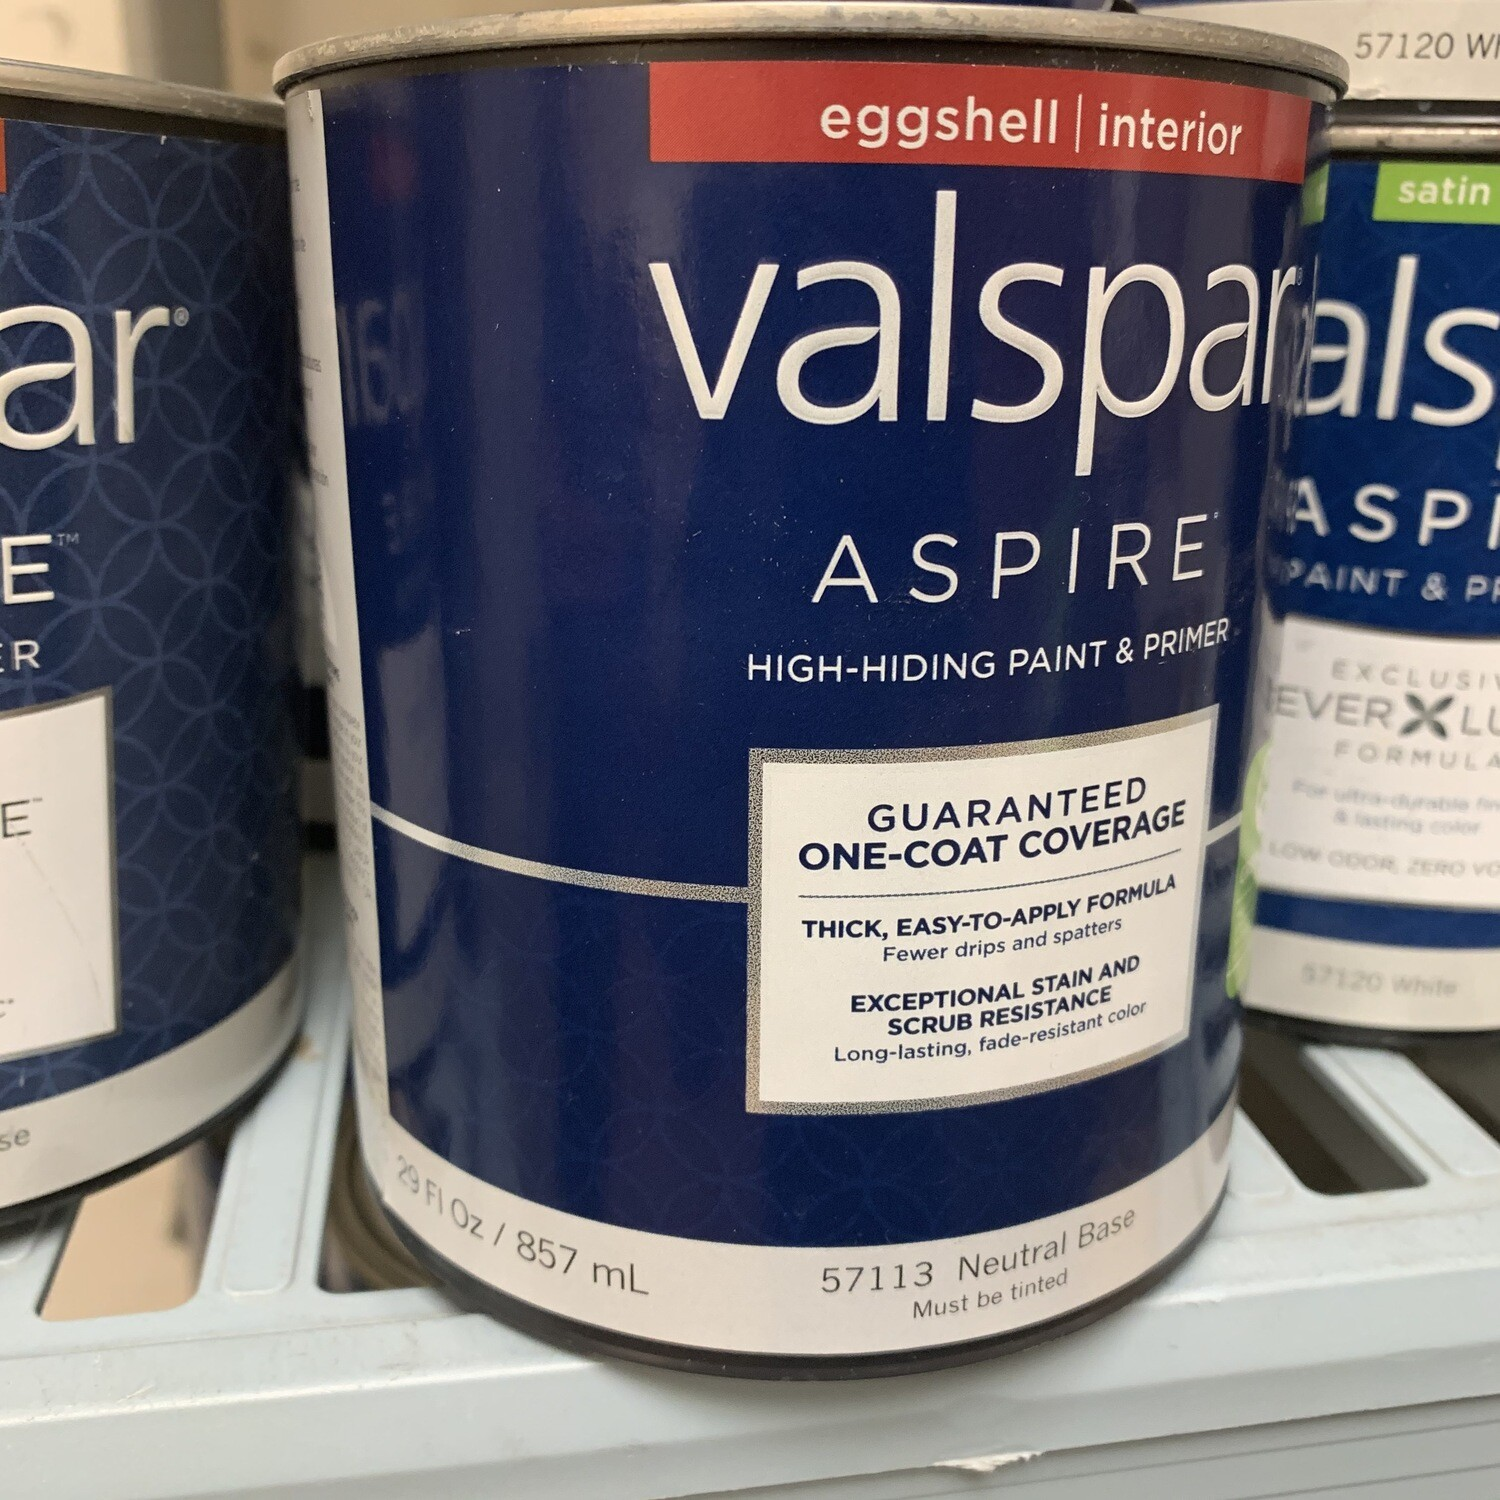 30 Oz Valspar Paint & Primer Eggshell Neutral Base 57113